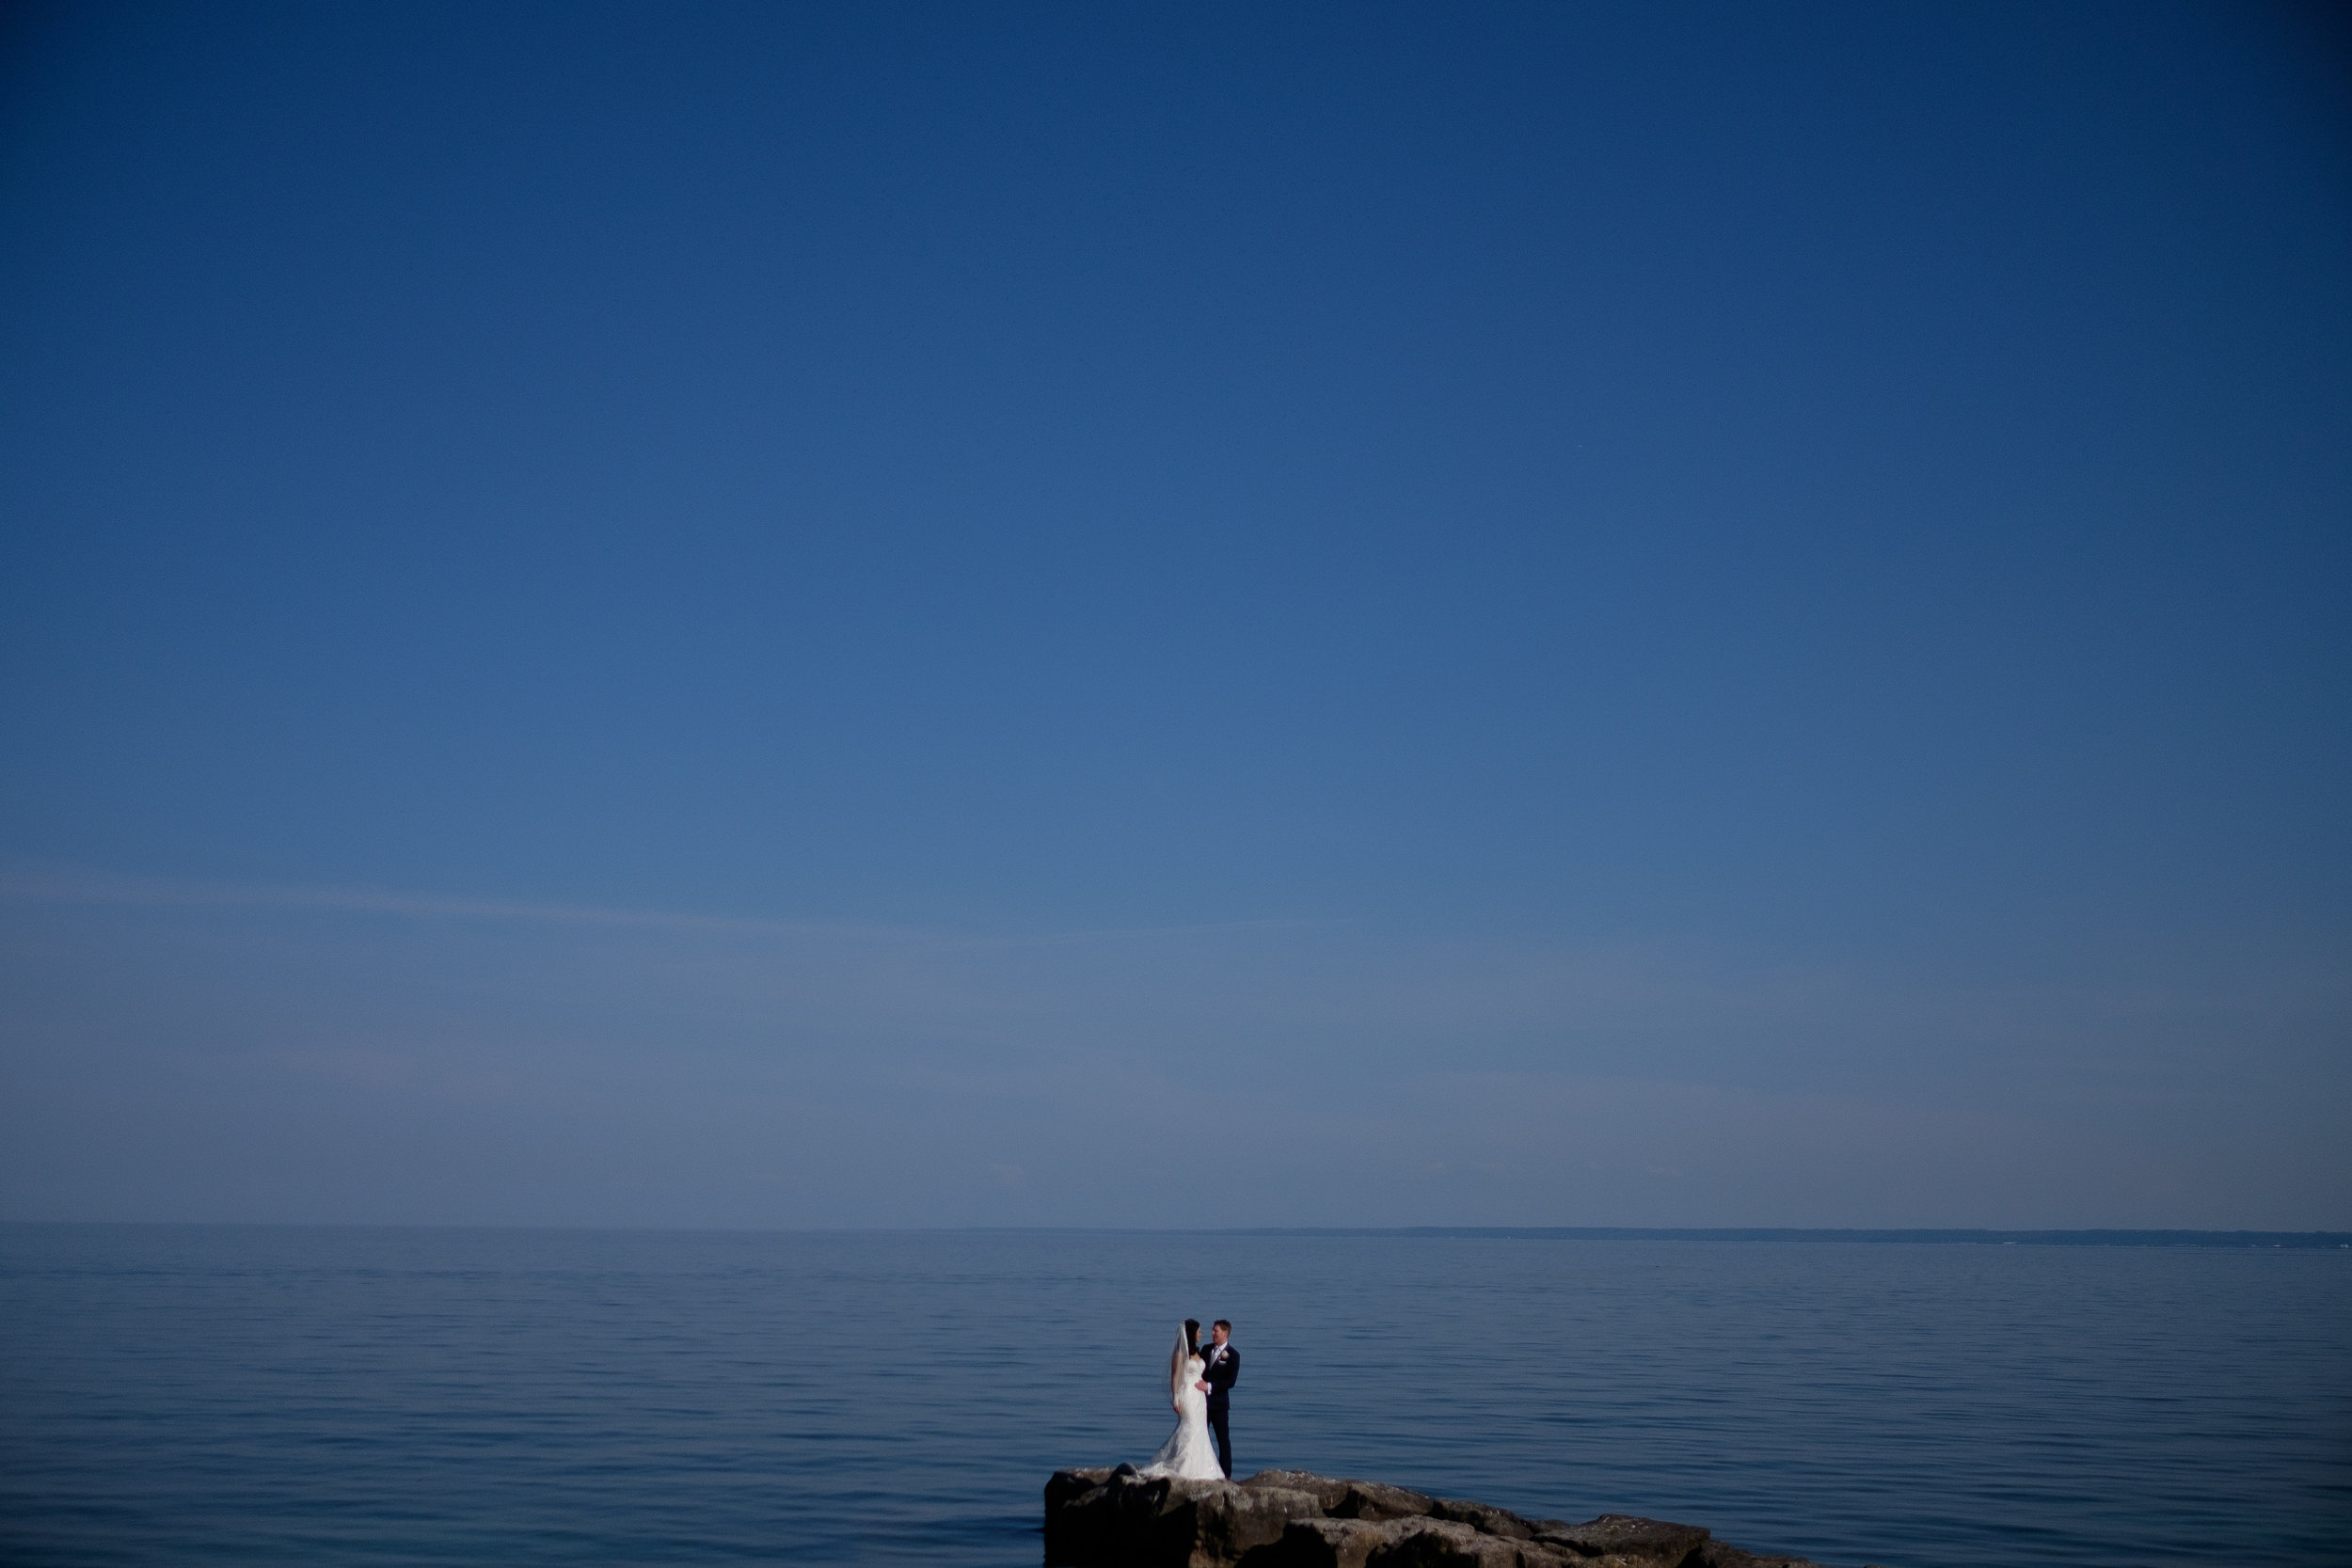 Not the Mediterranean... this is actually Lake Ontario.  We grabbed this beautiful portrait during Laura + Chris' amazing wedding at Paletta Mansion in Mississauga.